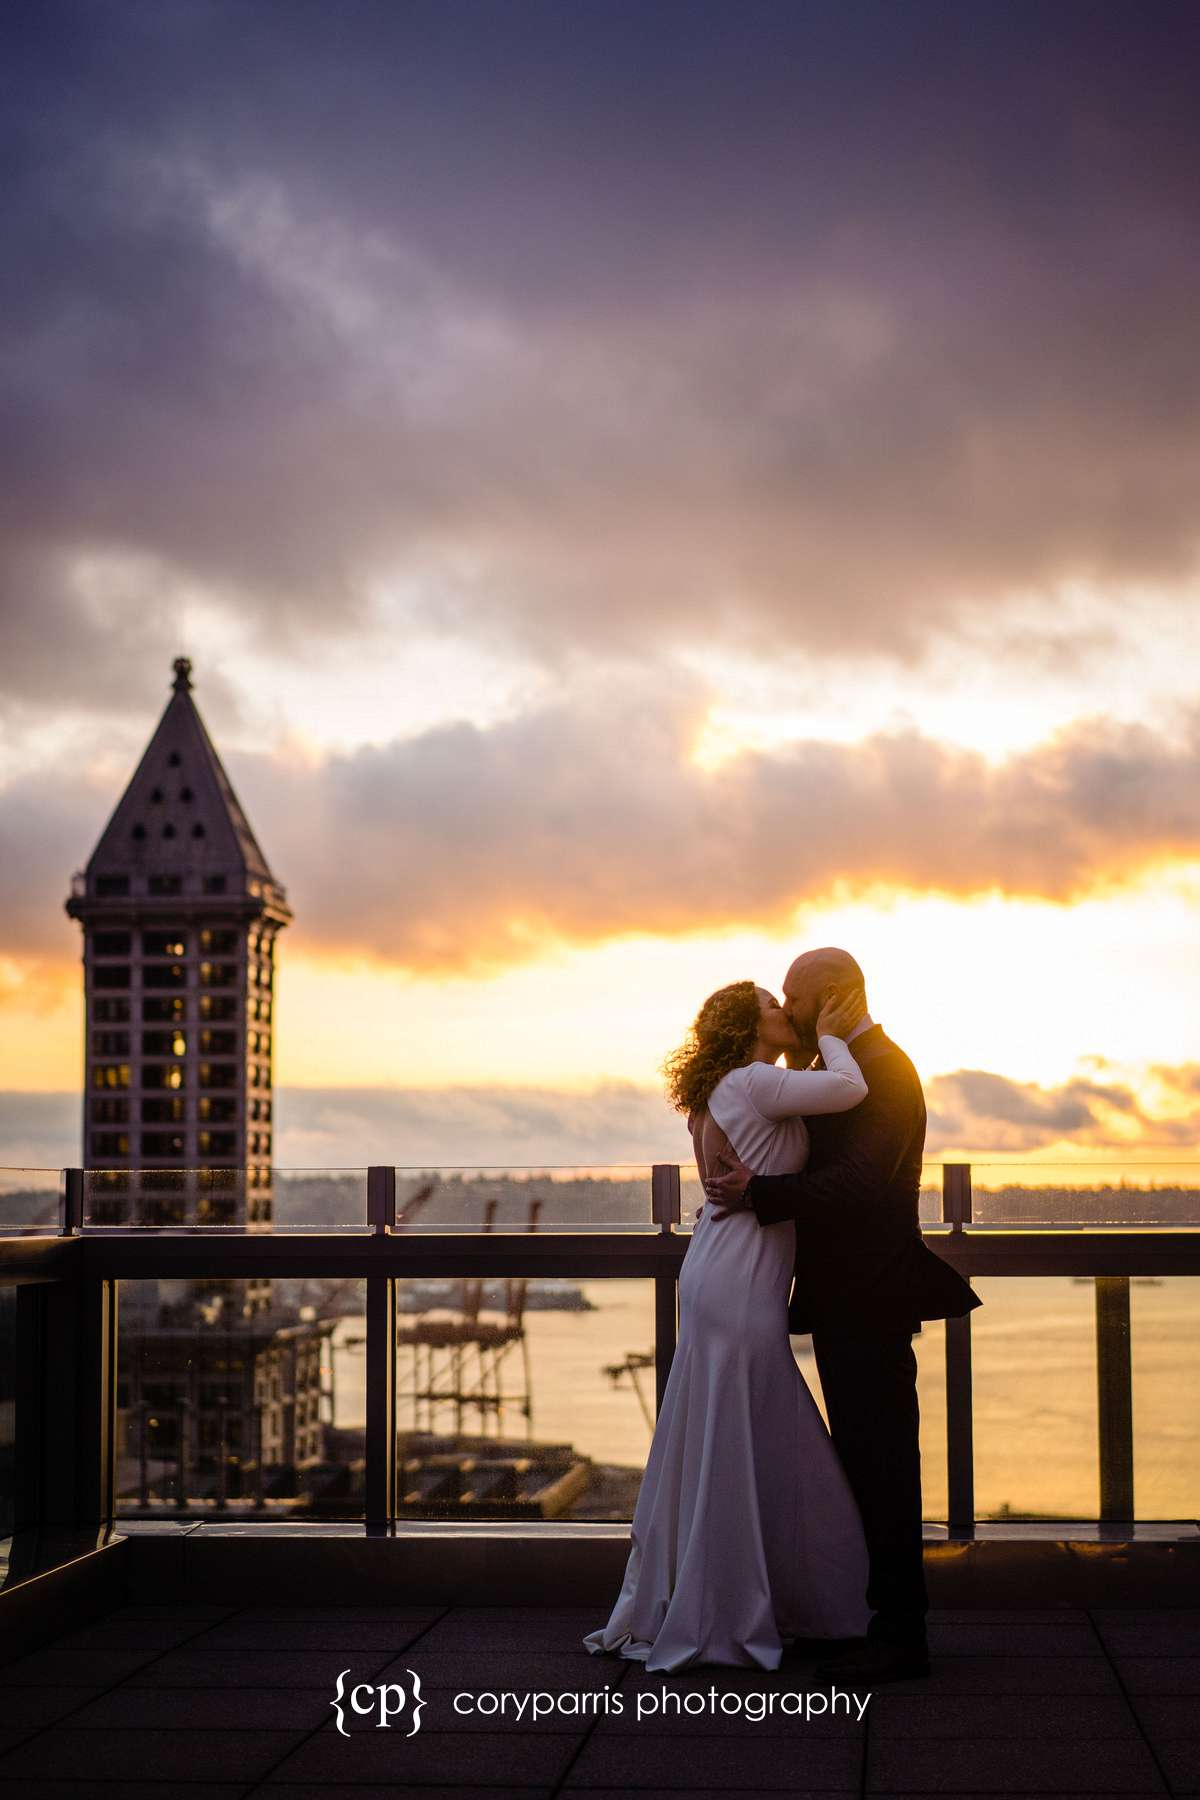 122-Seattle-Elope-Courthouse.jpg